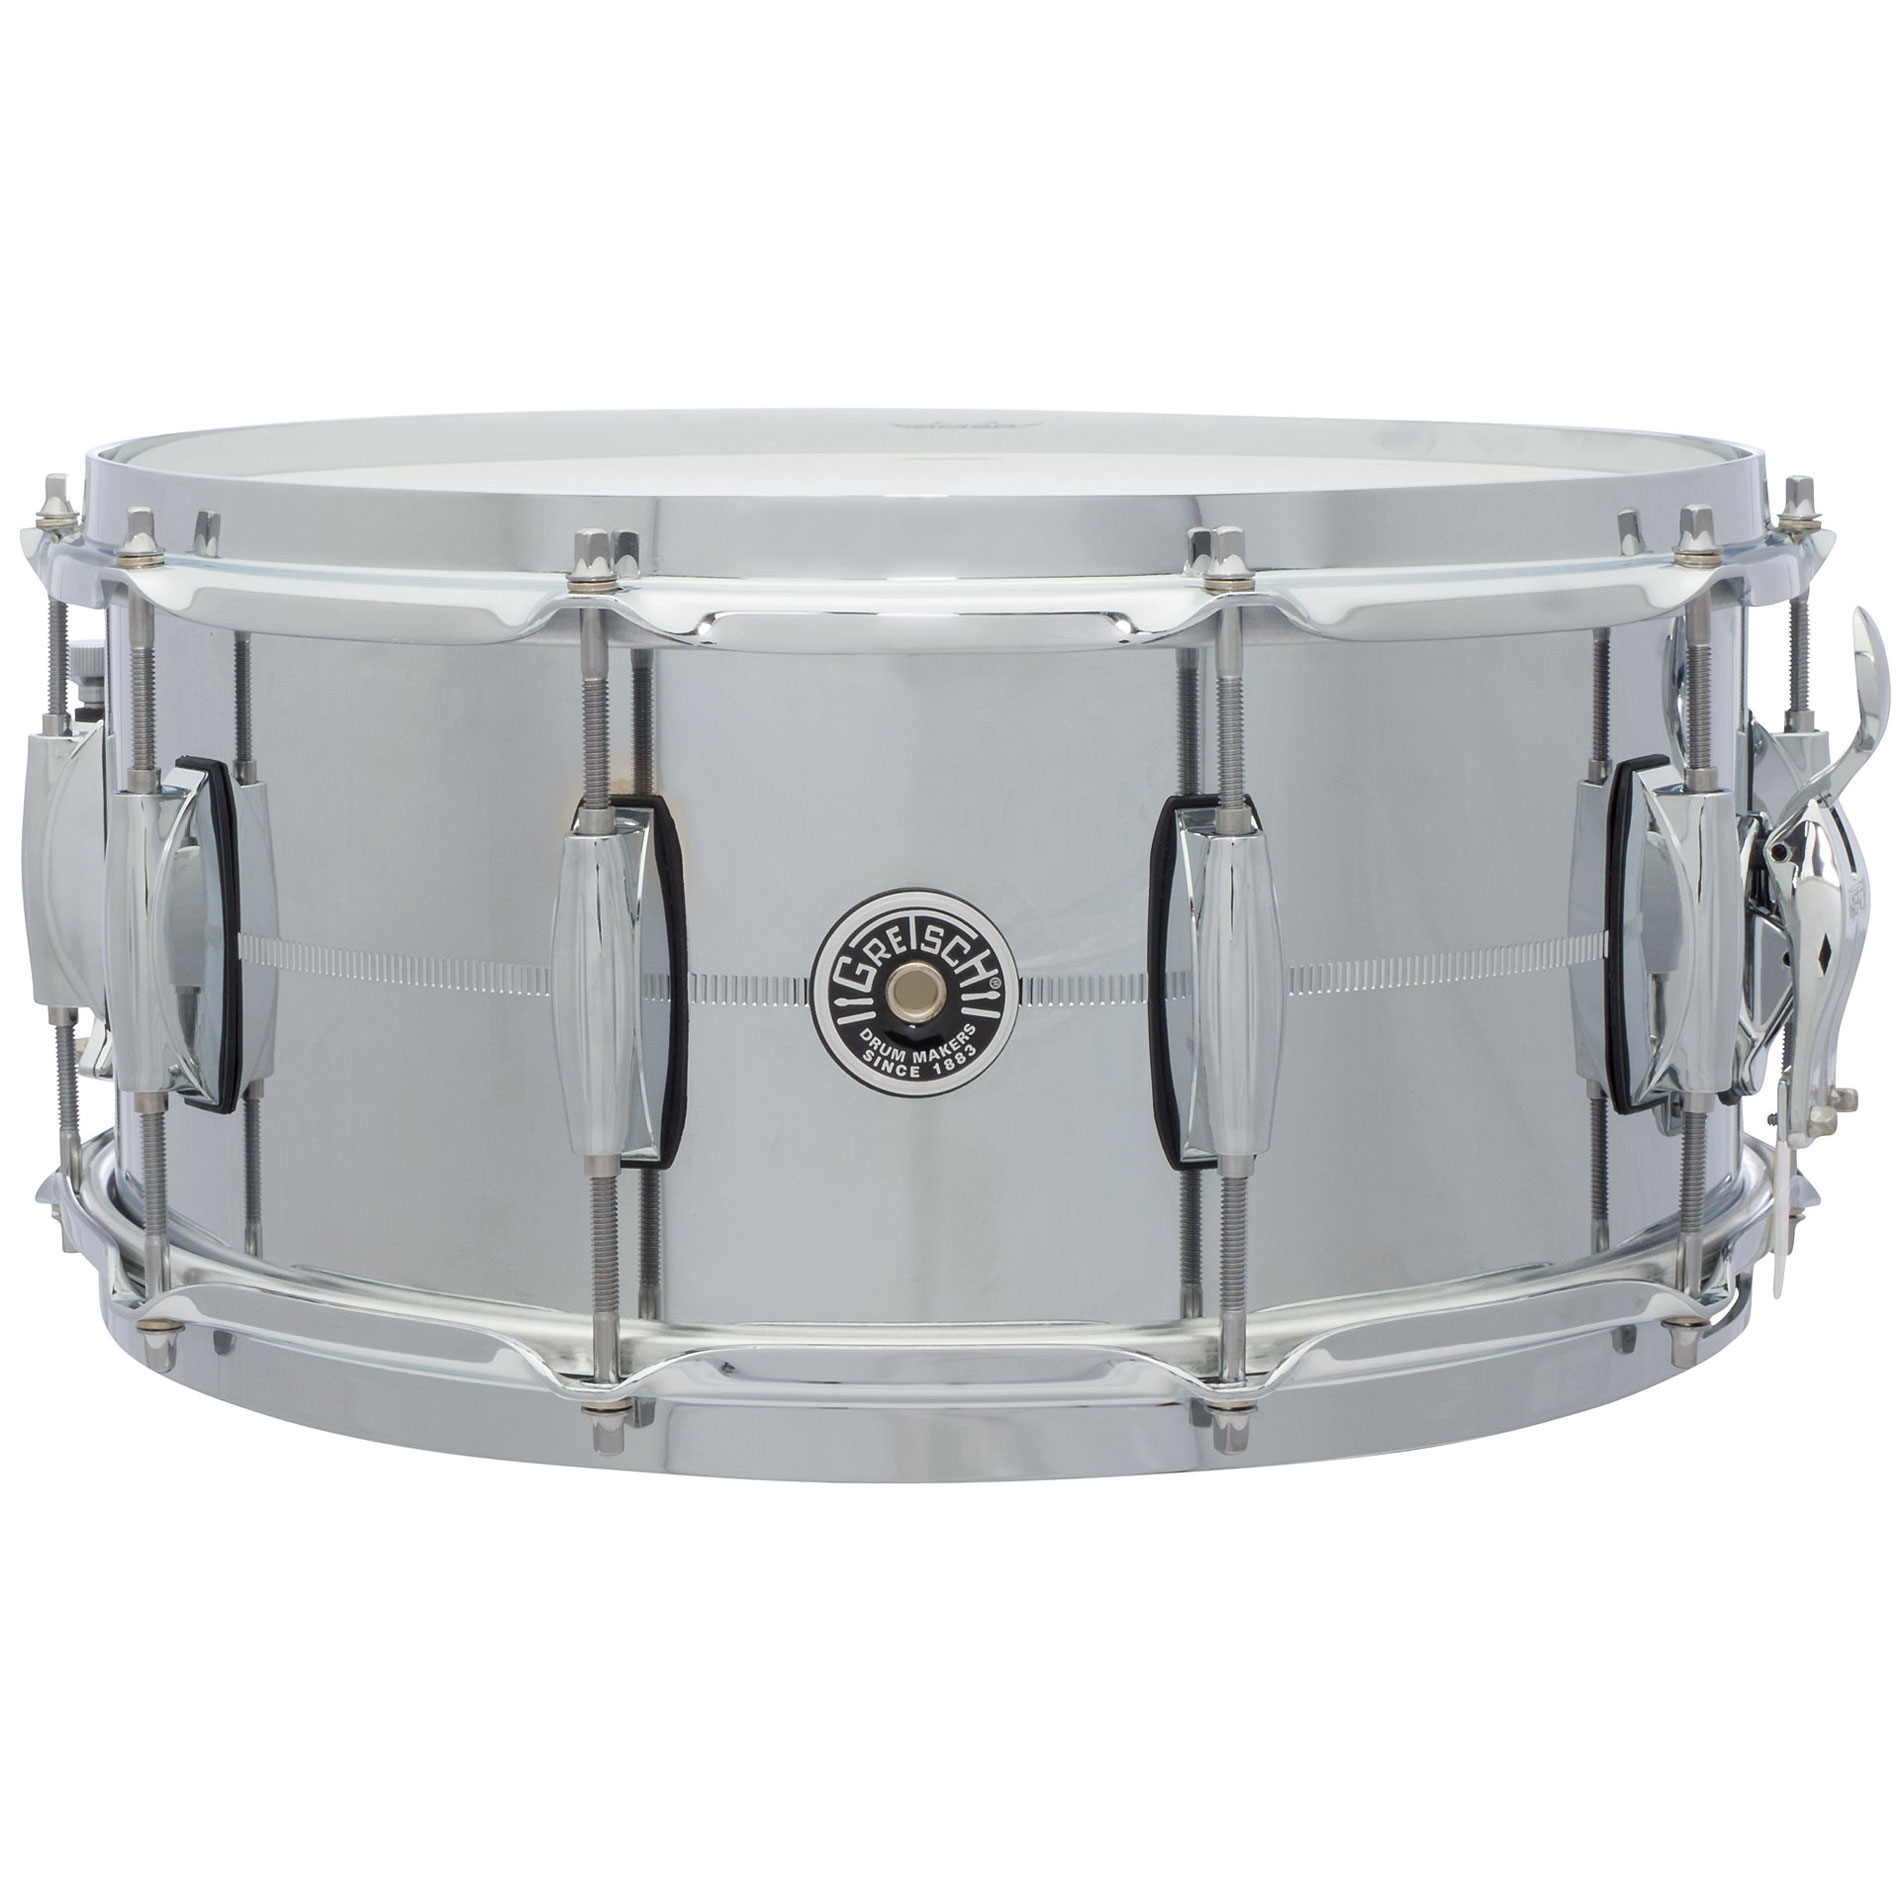 "Gretsch 6.5"" x 14"" USA Brooklyn Metal Chrome Steel Snare Drum"